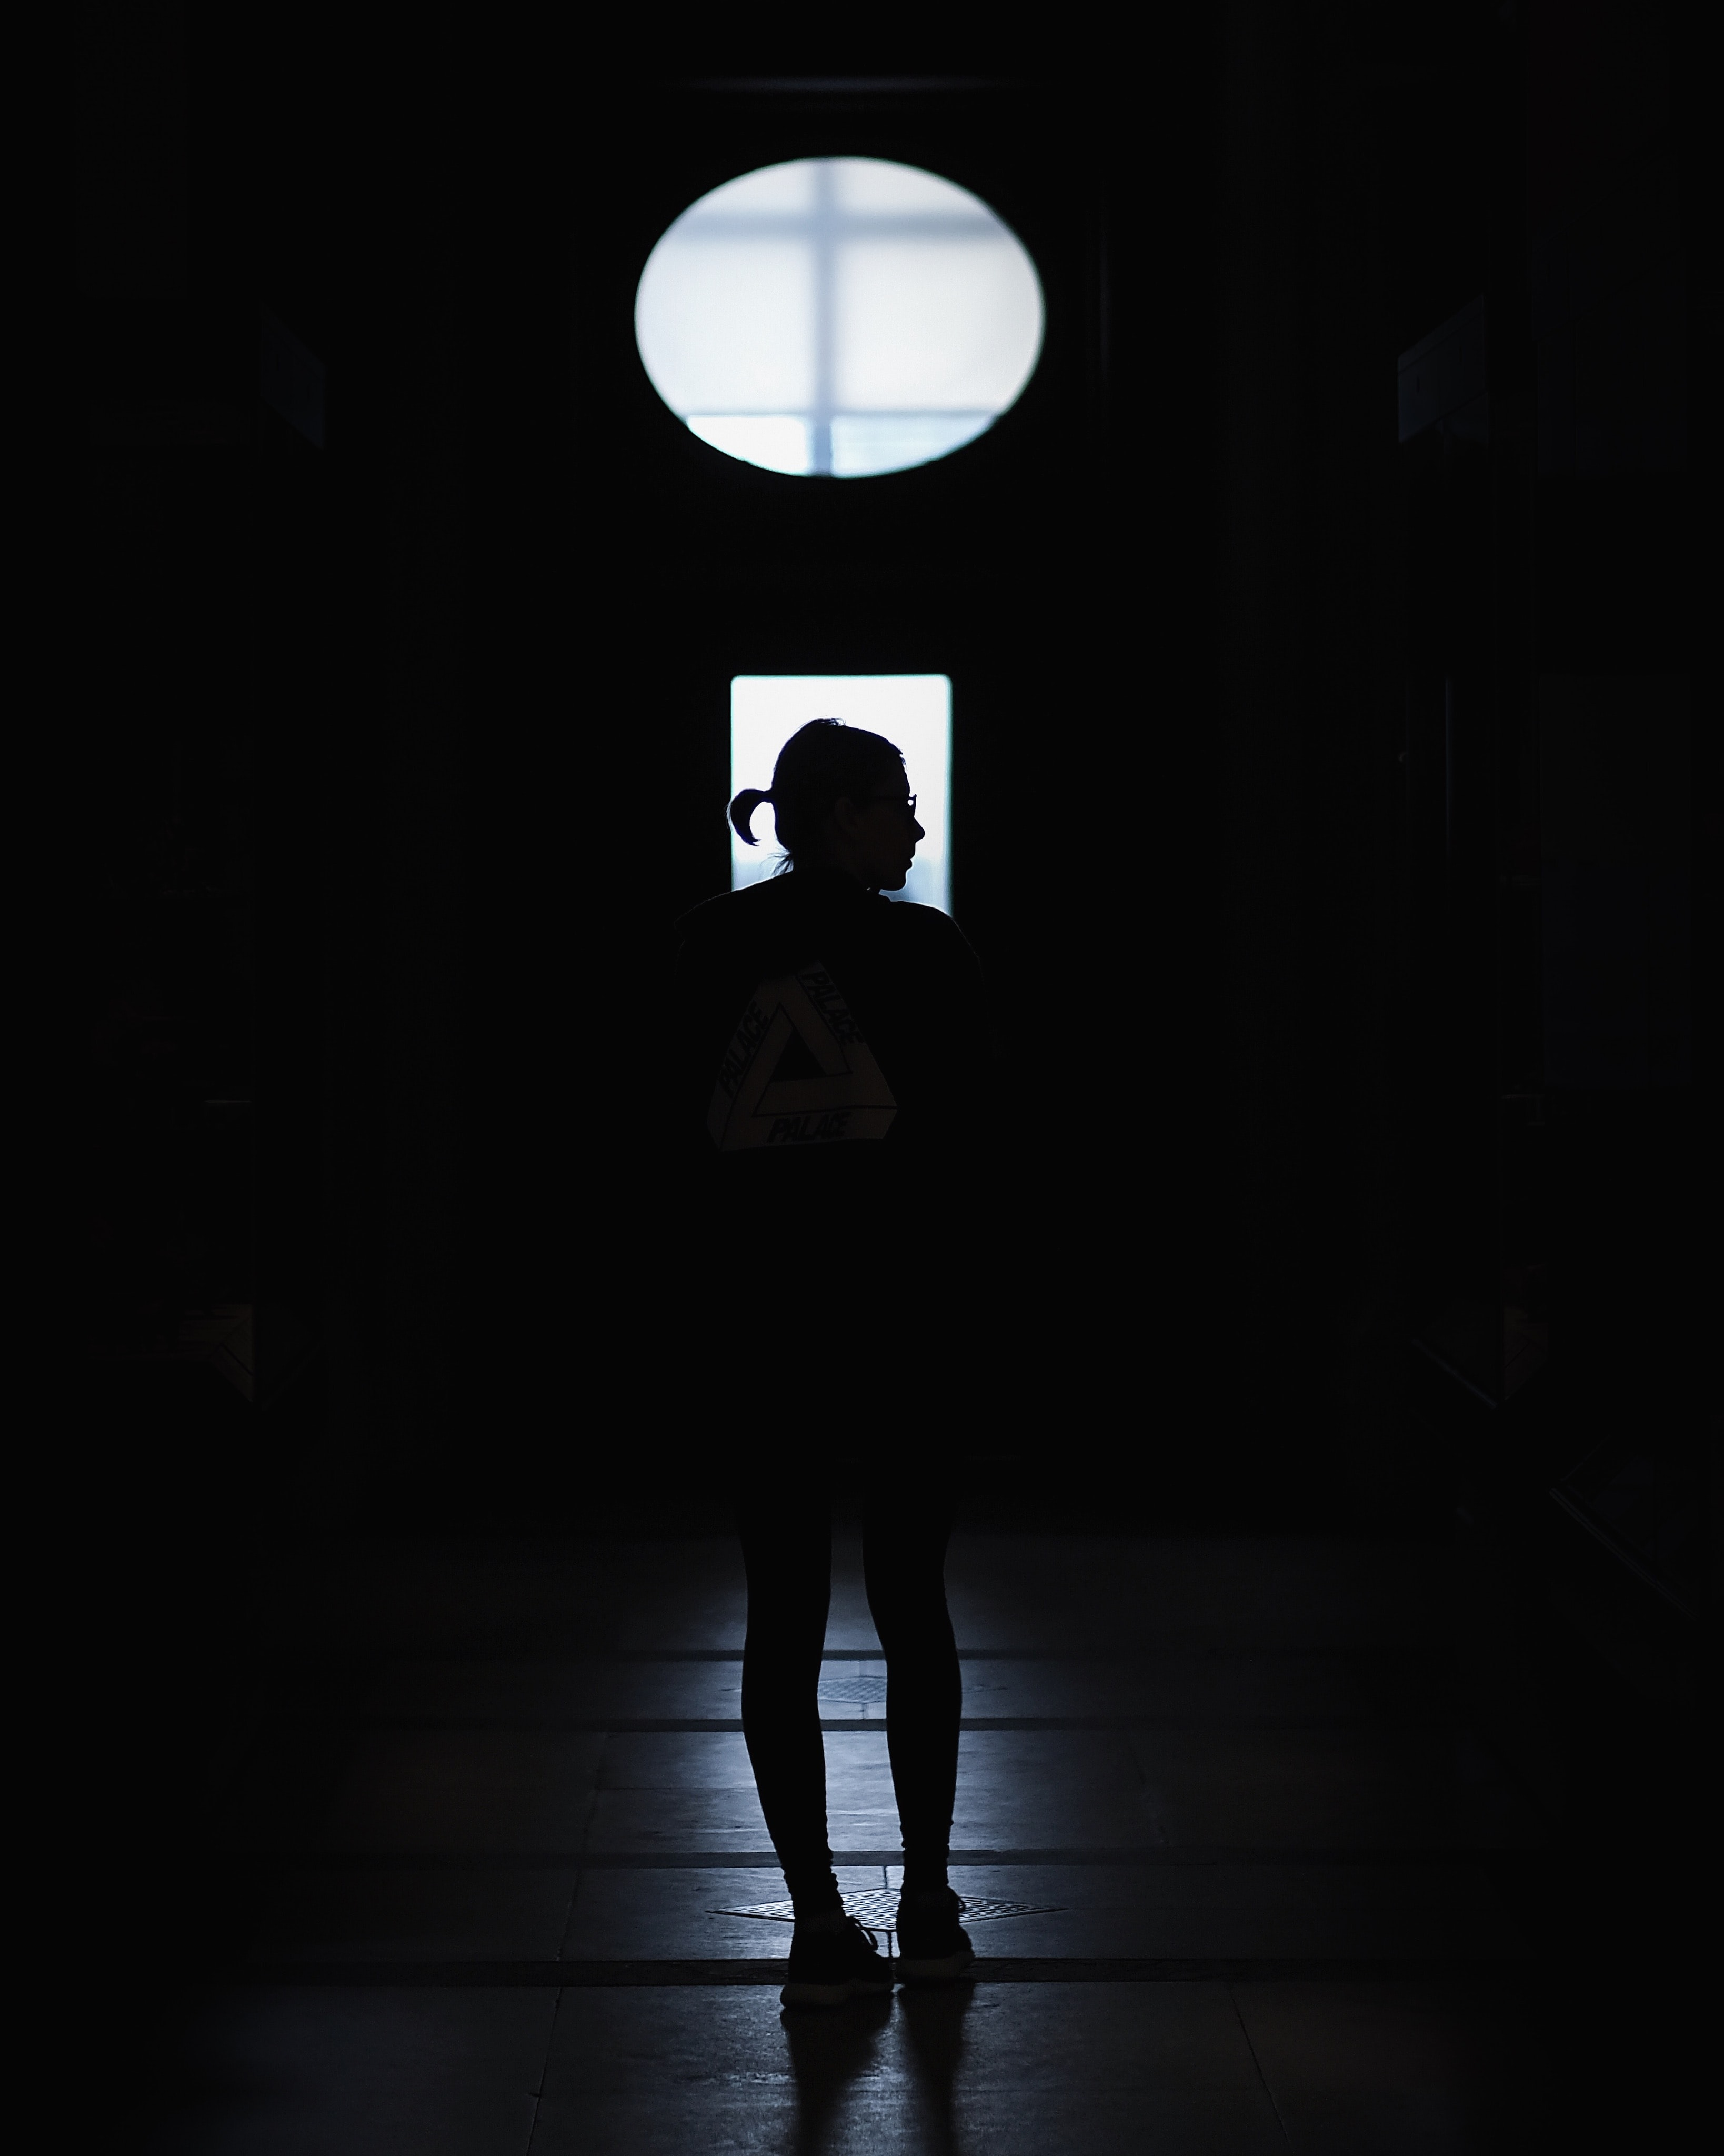 silhouette of a standing person